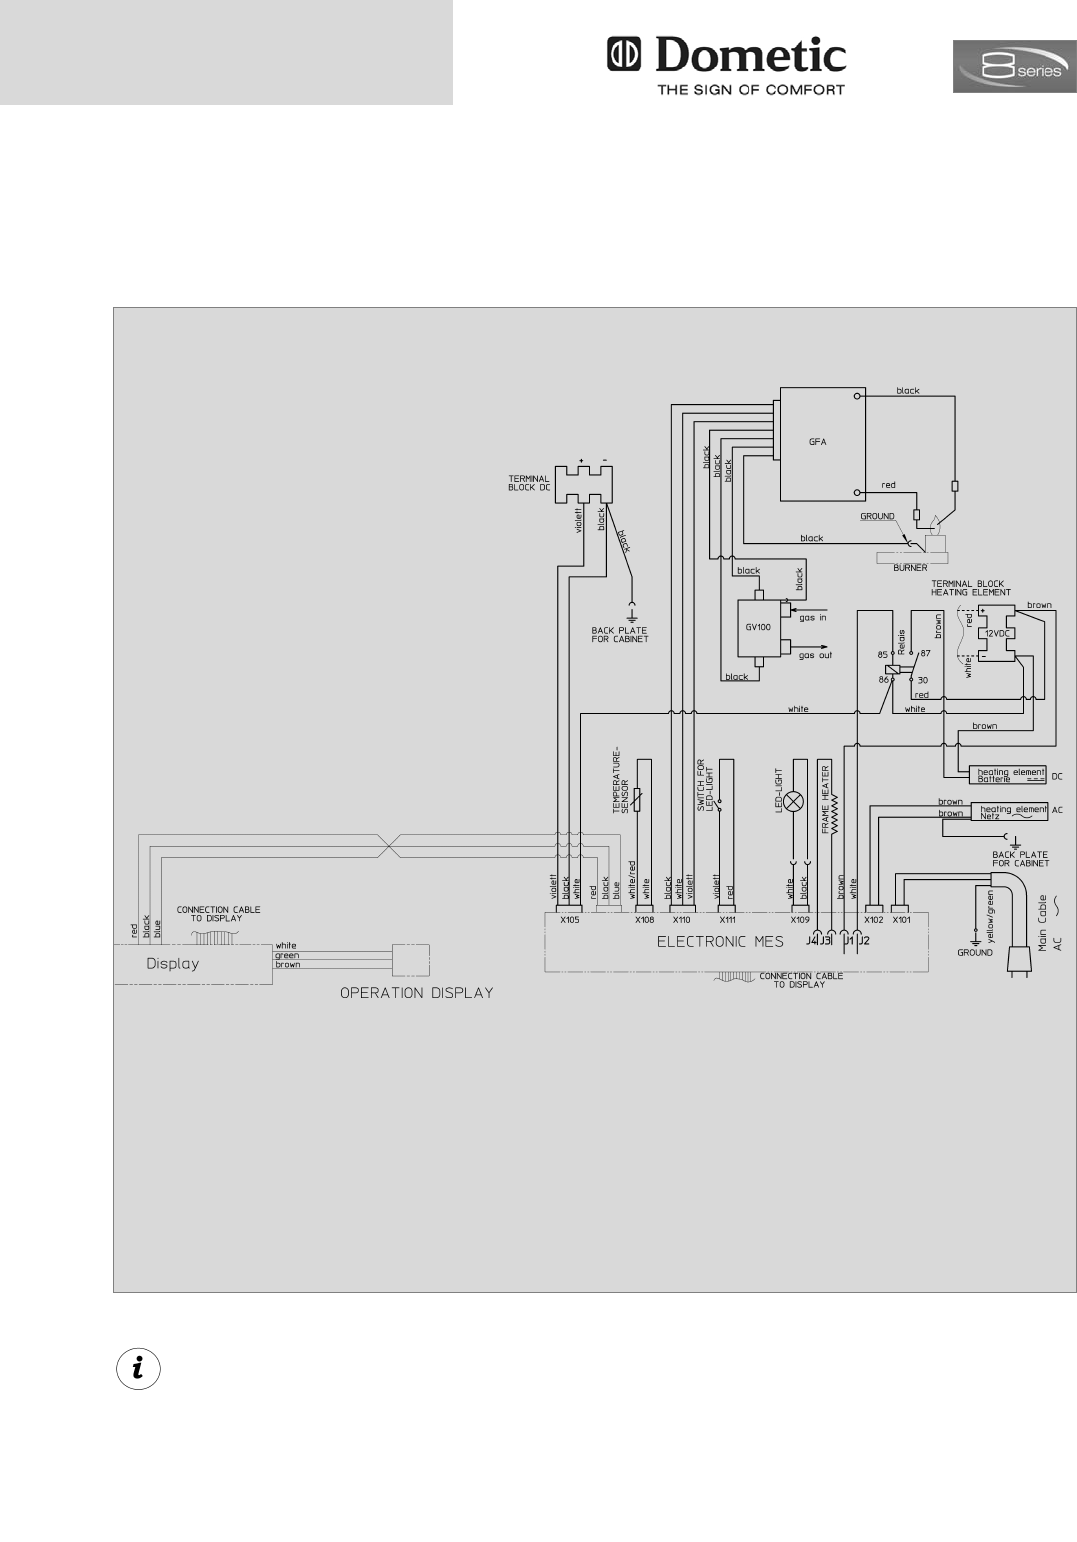 01e2568a 3535 4d87 acf7 e9ce87d7e0dc bg14?resize\=665%2C952 thetford caravan fridge wiring diagram best wiring diagram 2017 thetford n112 fridge wiring diagram at panicattacktreatment.co